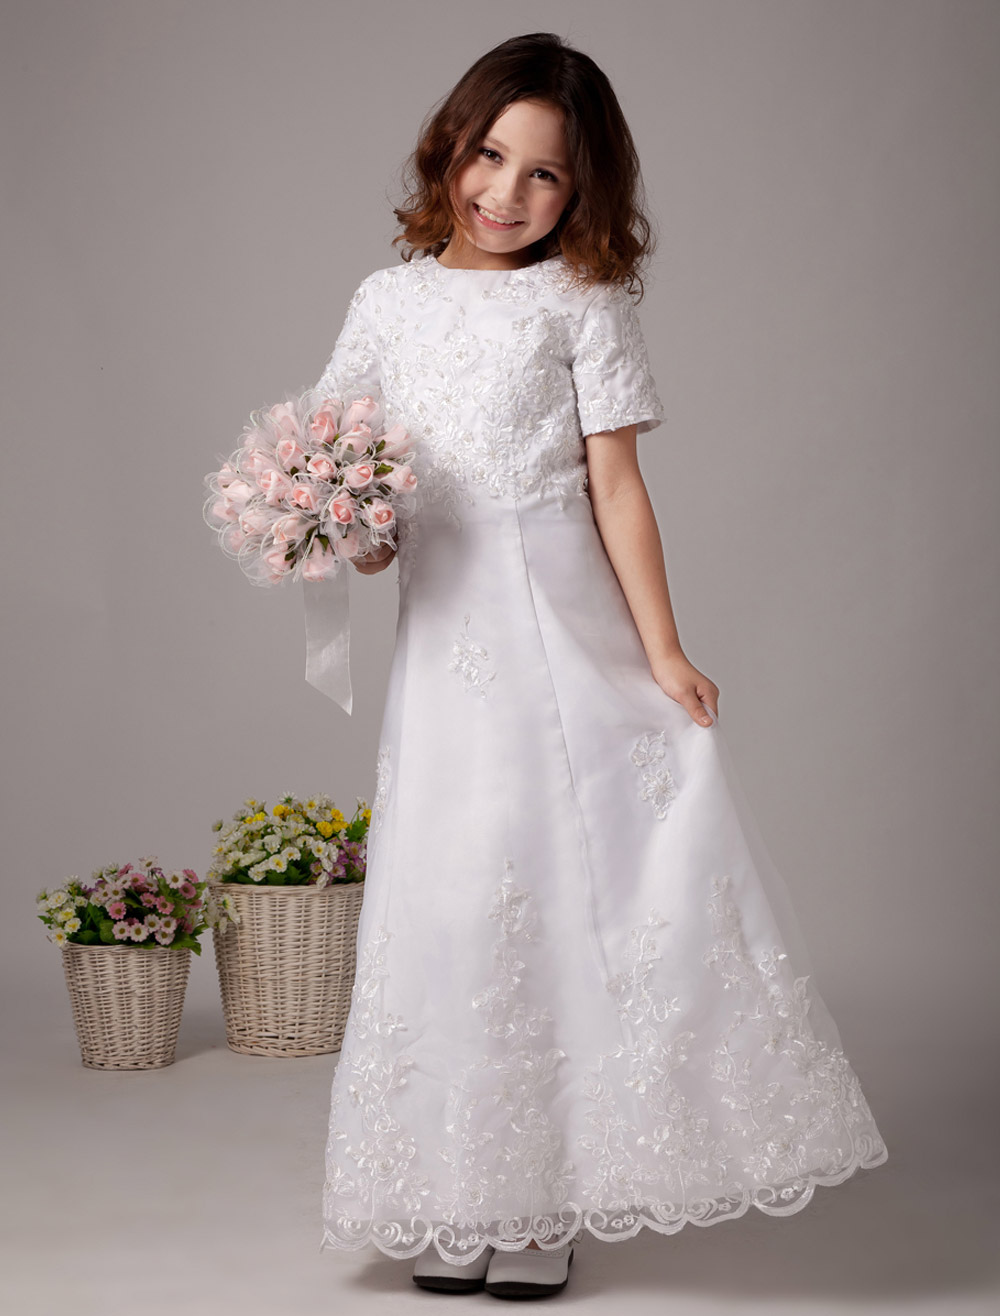 White Flower Girl Dresses Short Sleeve Lace Applique First Communion Dress